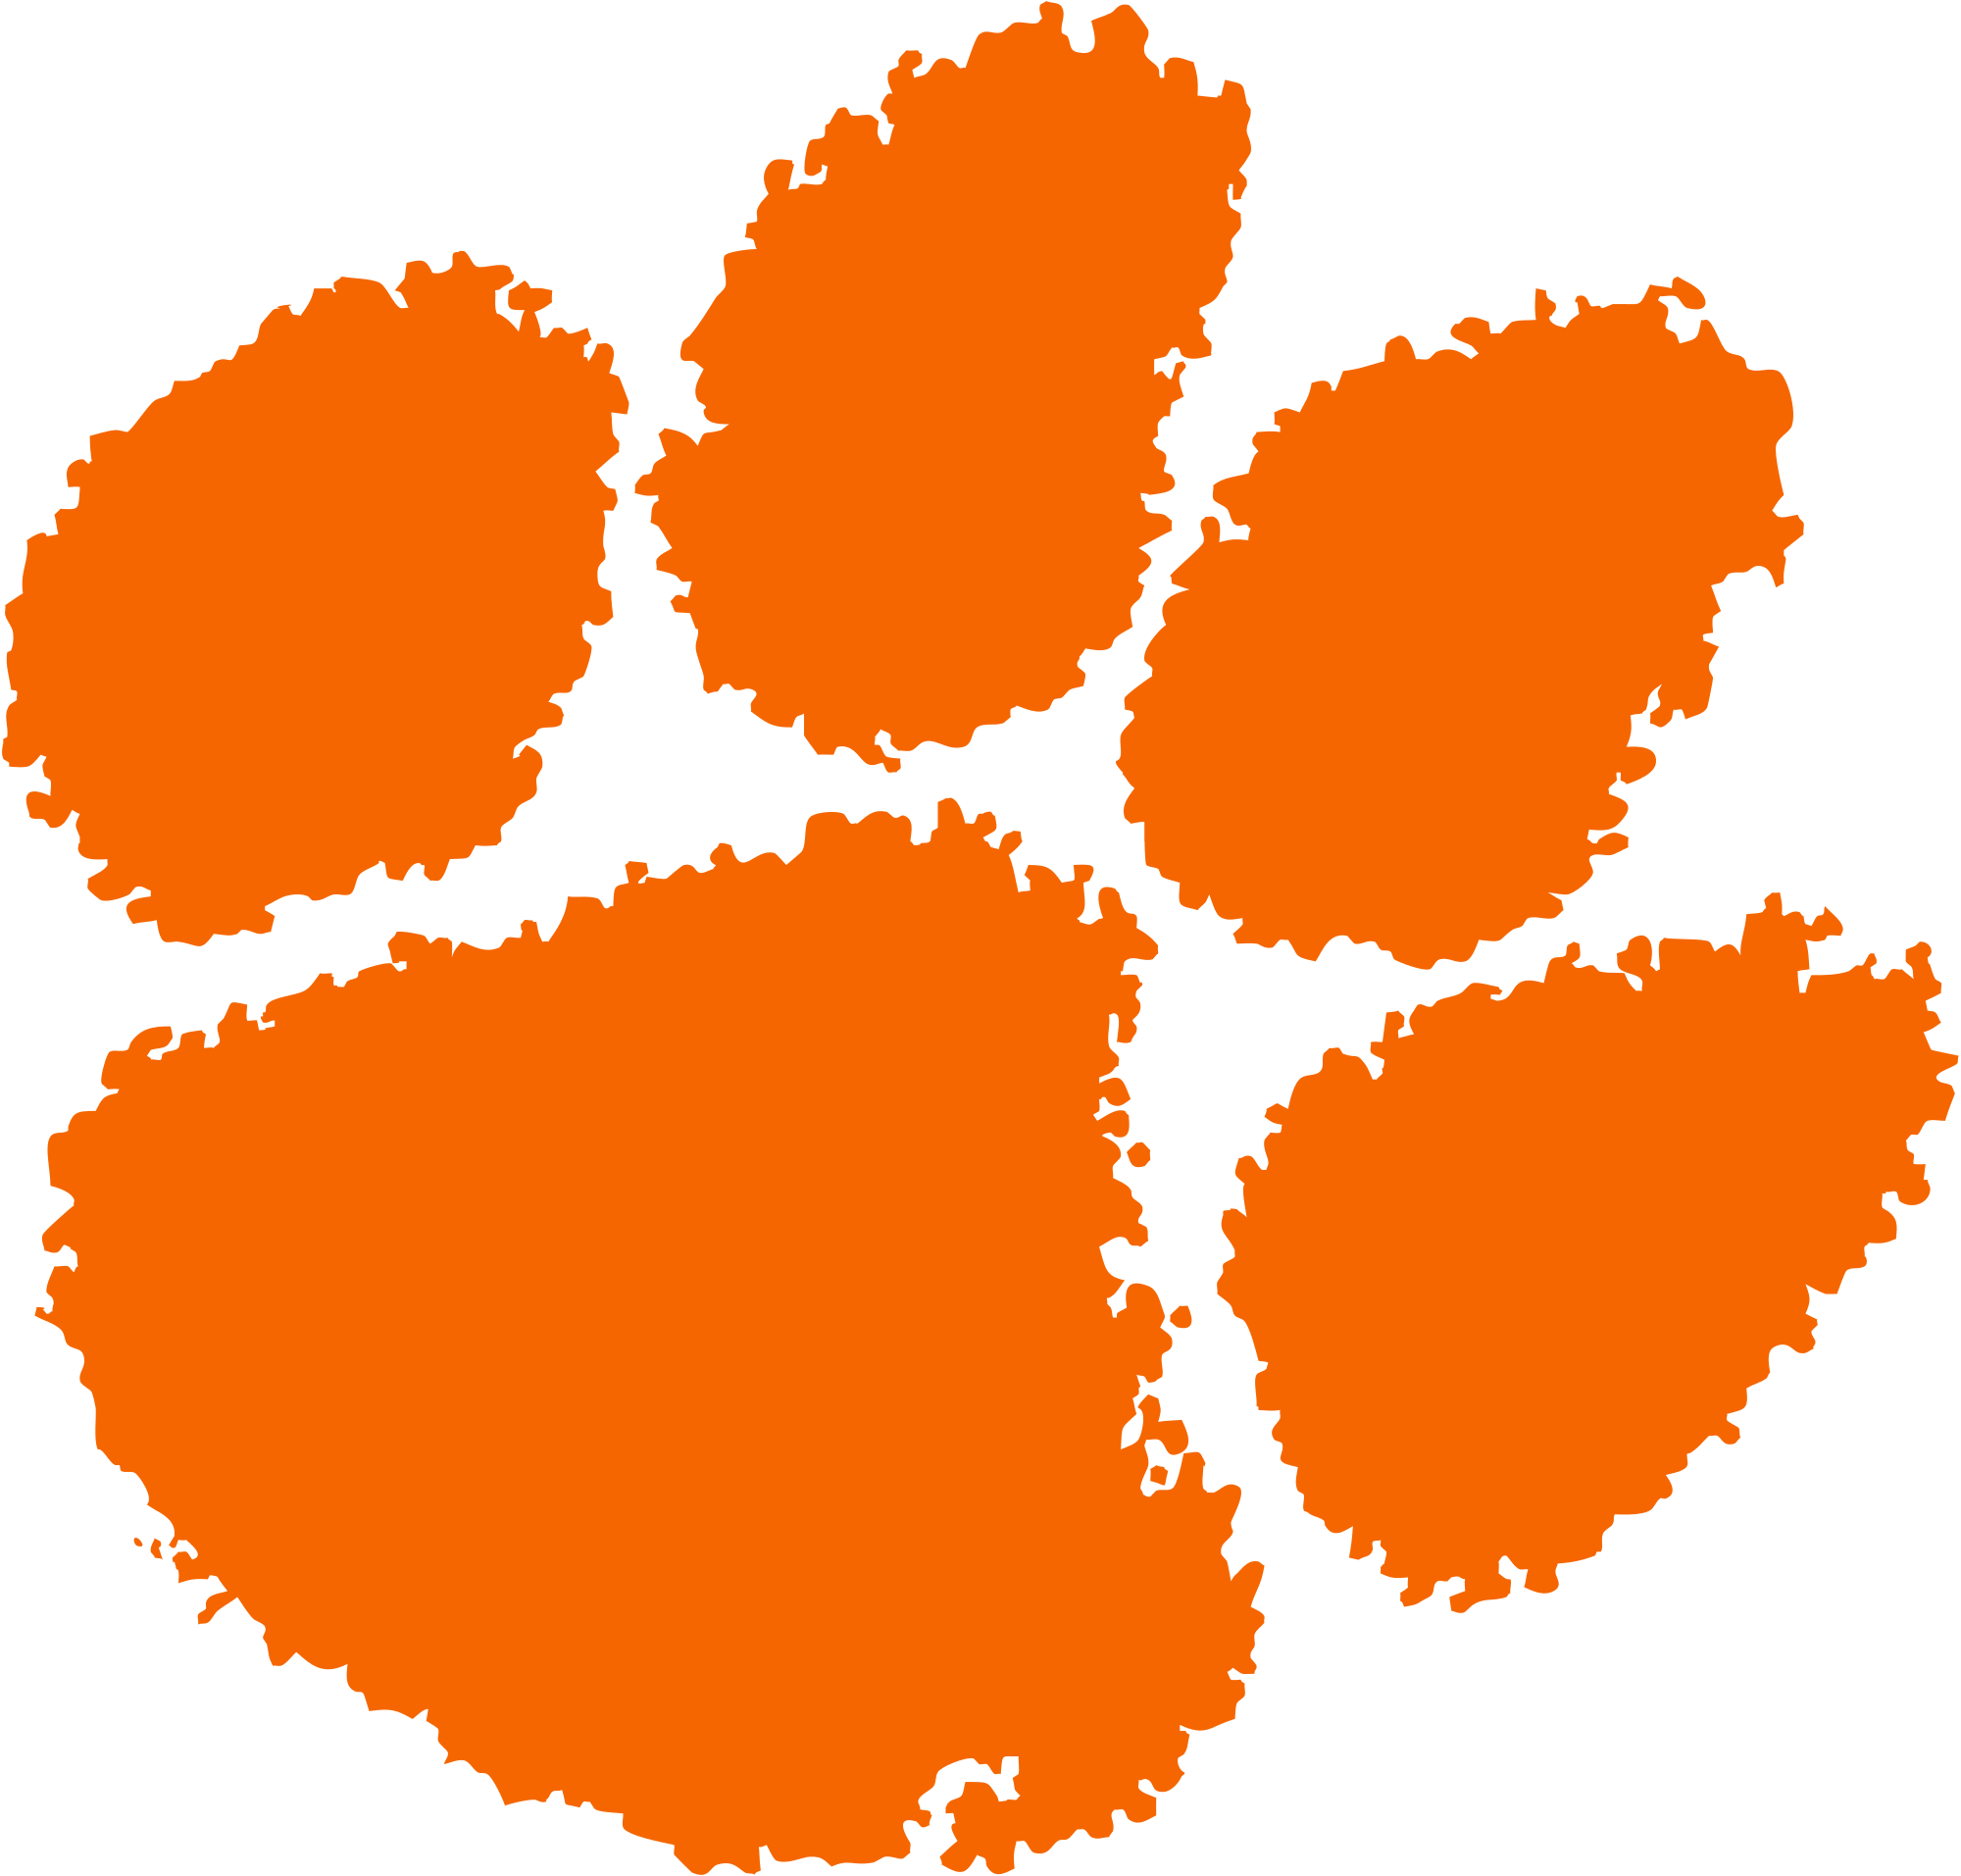 Clemson football clipart picture library library Clemson Preview: The Better Team Again picture library library